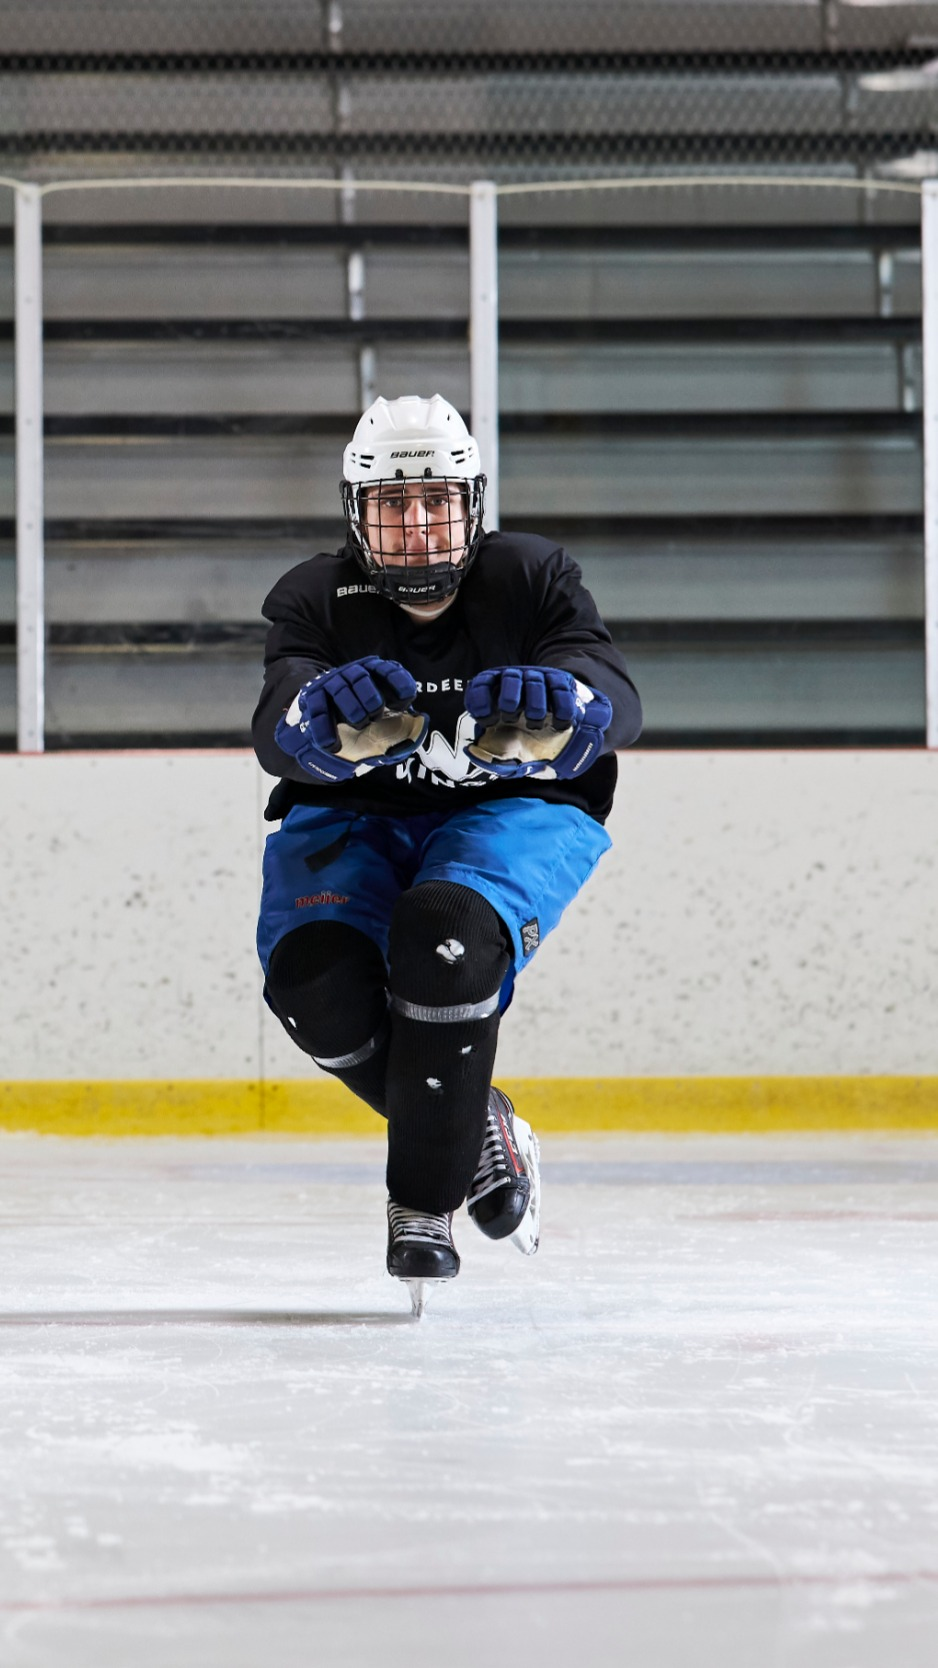 0631_07_Shot 7_190622_SwintonPowerSkate_